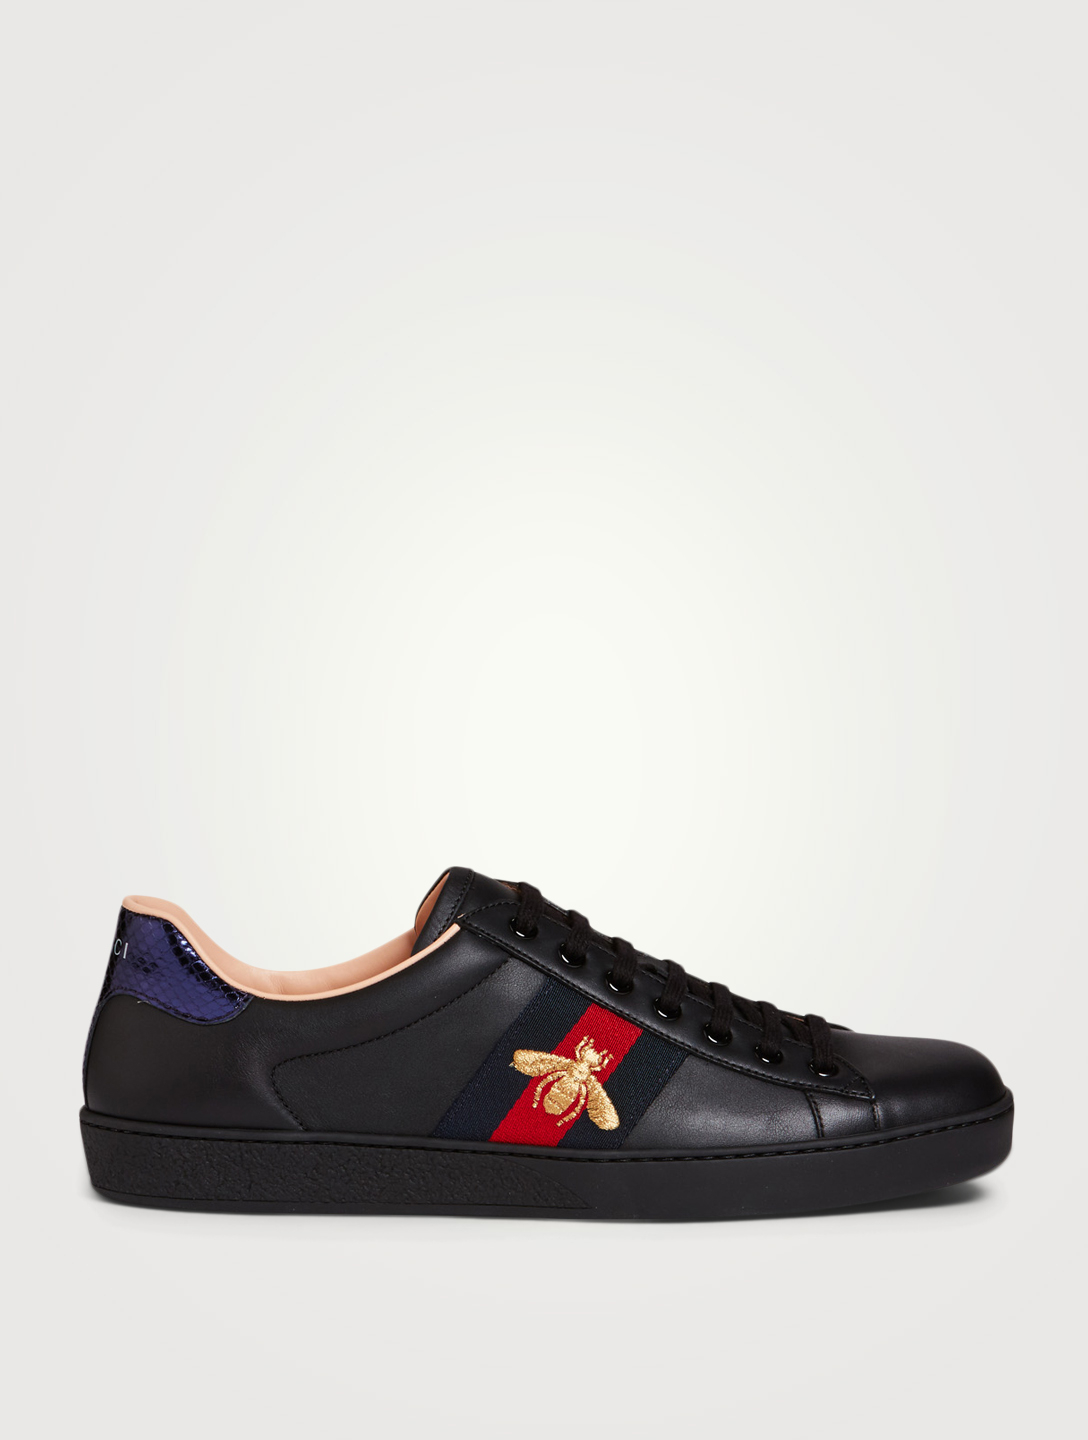 fca1cd865 GUCCI New Ace Embroidered Leather Sneakers Men's Black ...